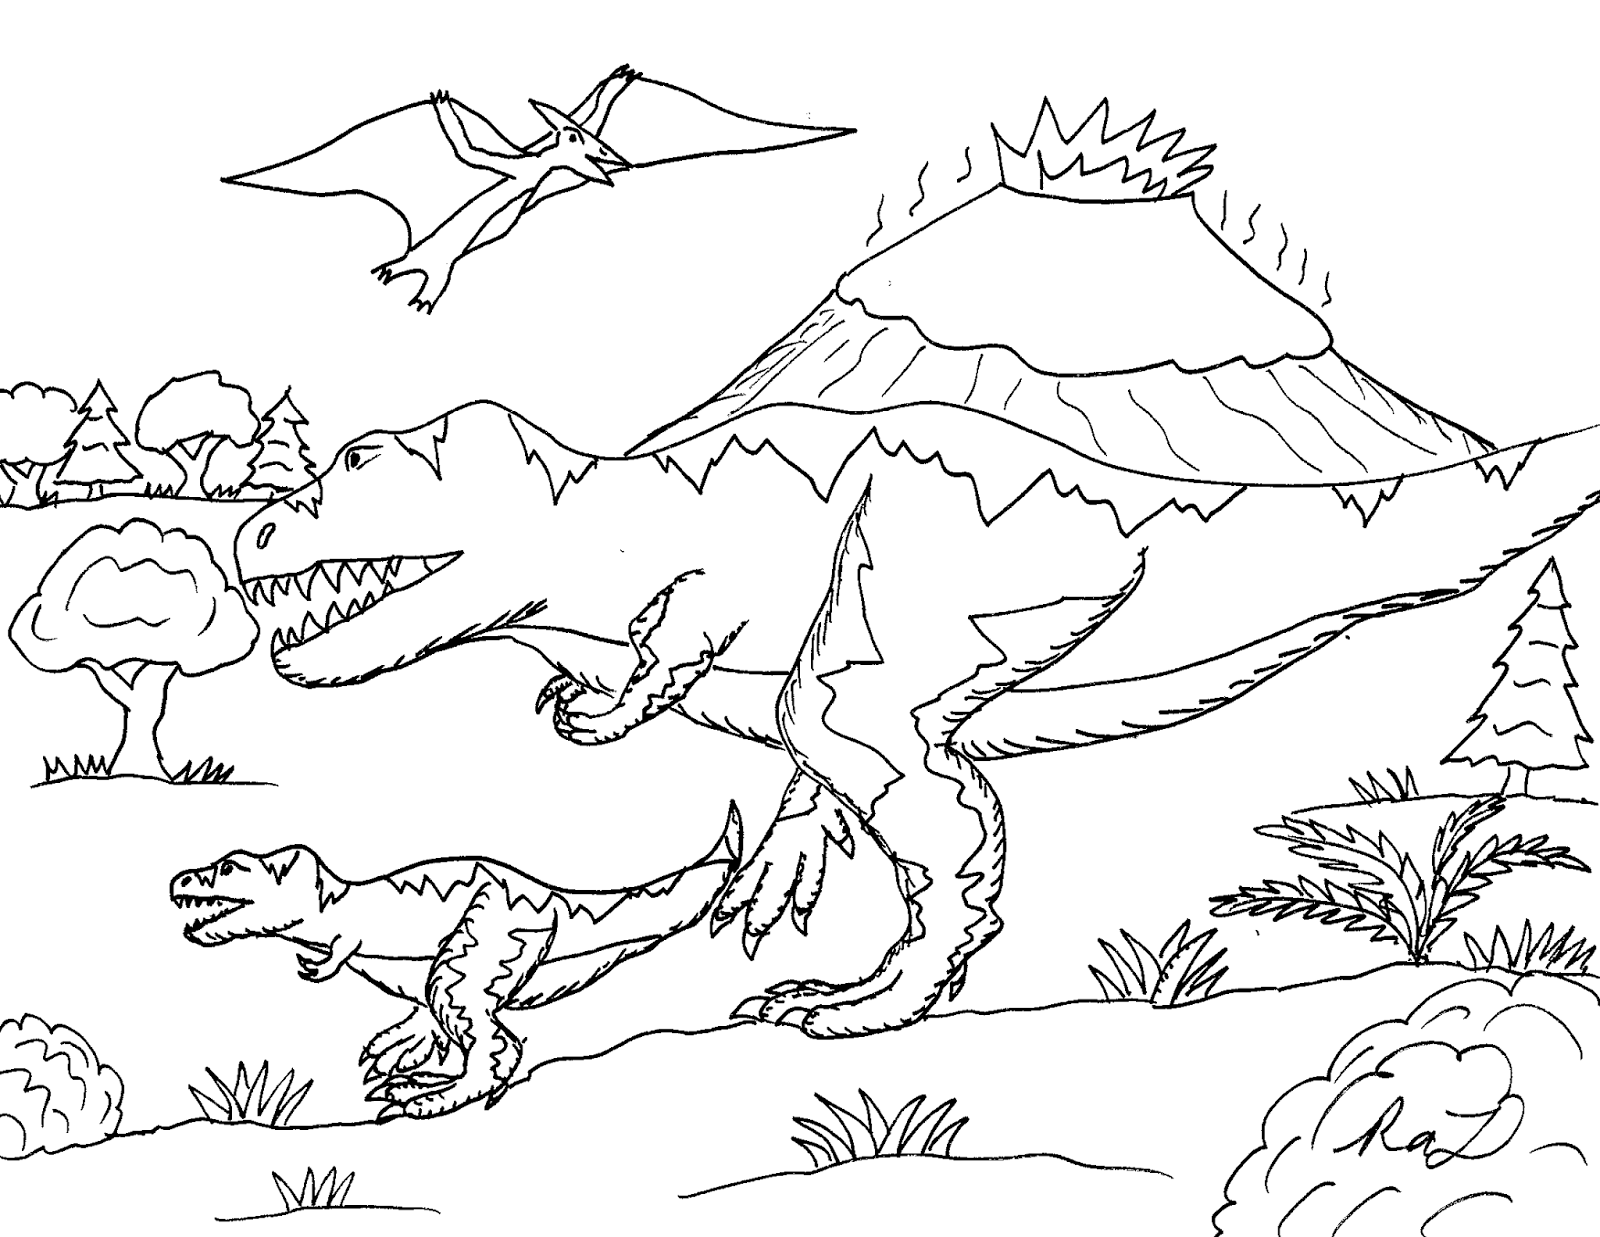 Robin S Great Coloring Pages 3 Cretaceous Dinosaurs